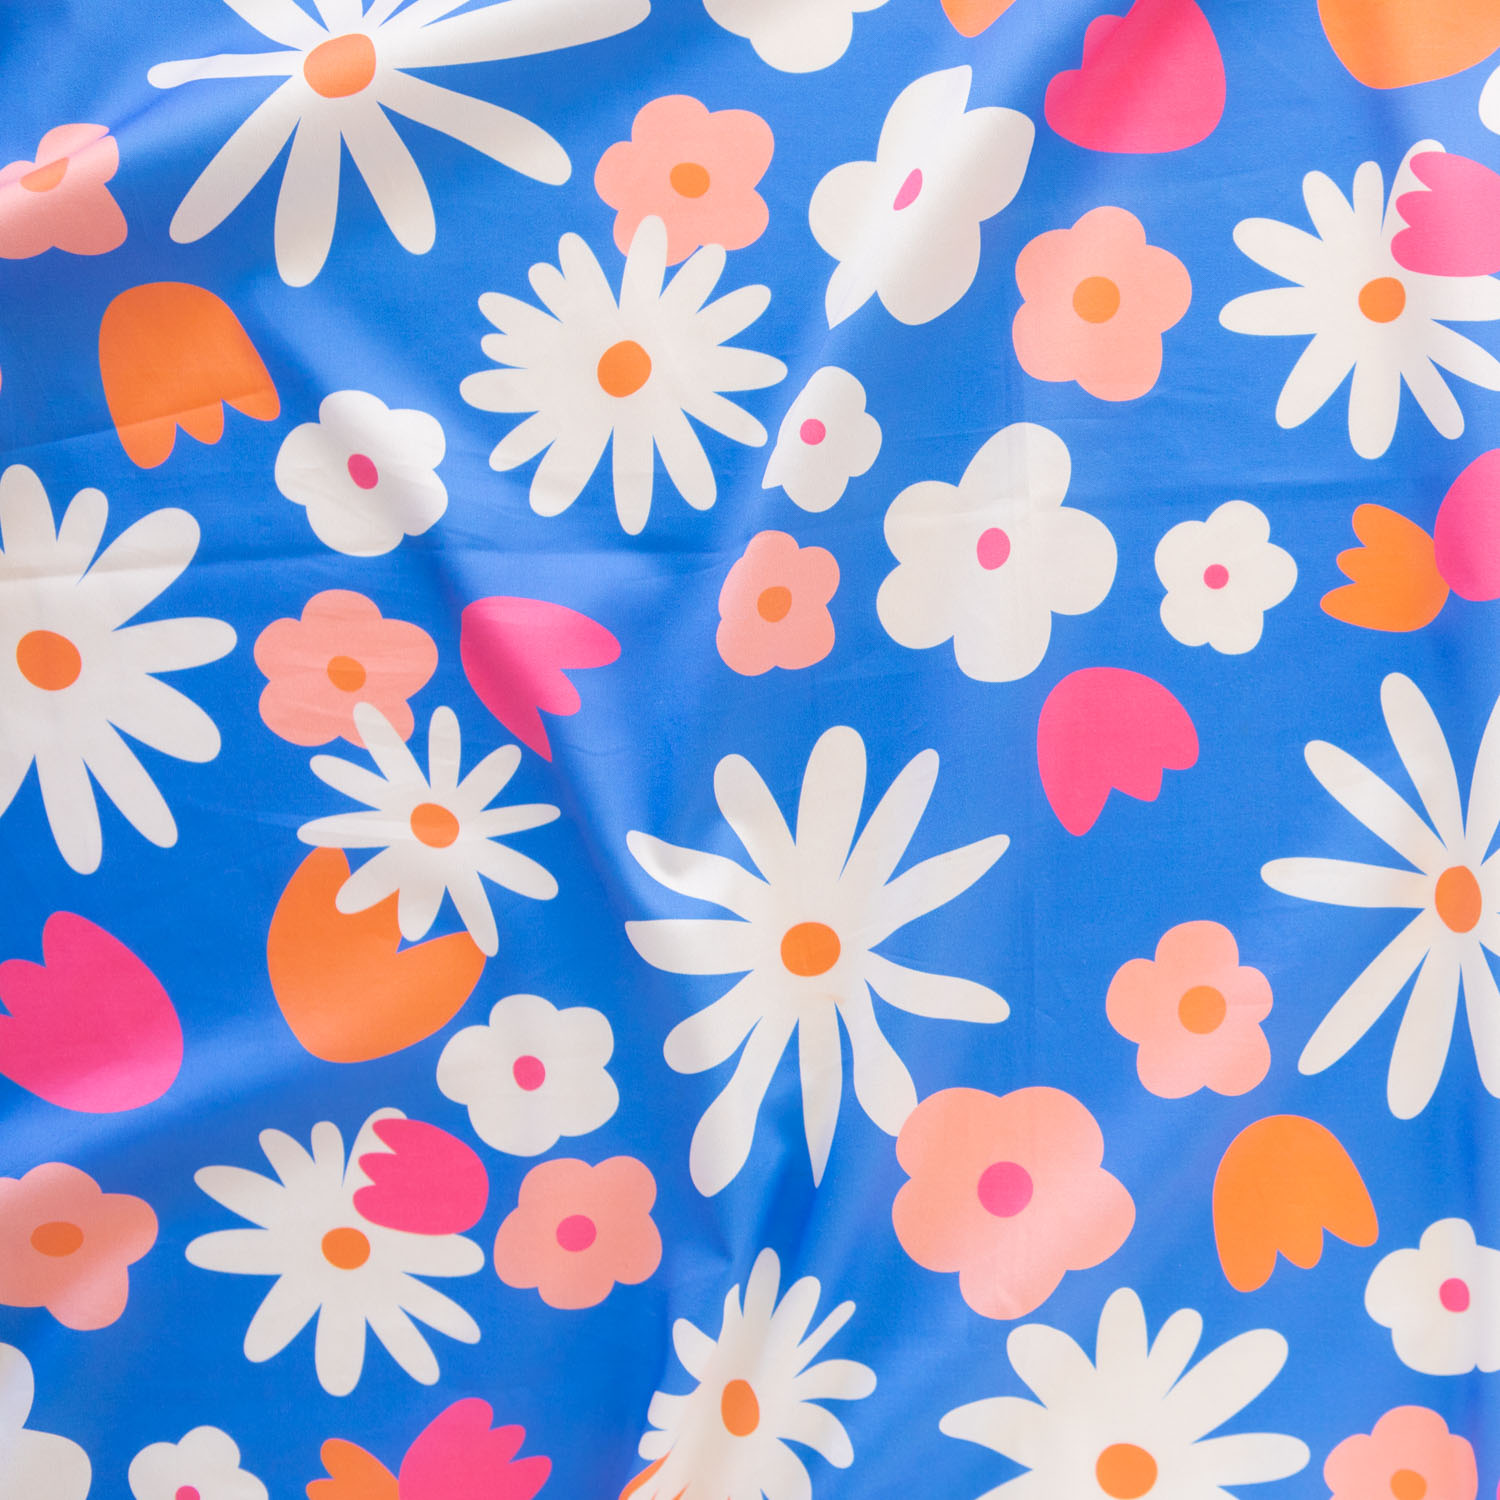 https://sarahhearts.com/wp-content/uploads/2020/07/june_floral_blue_1.jpg